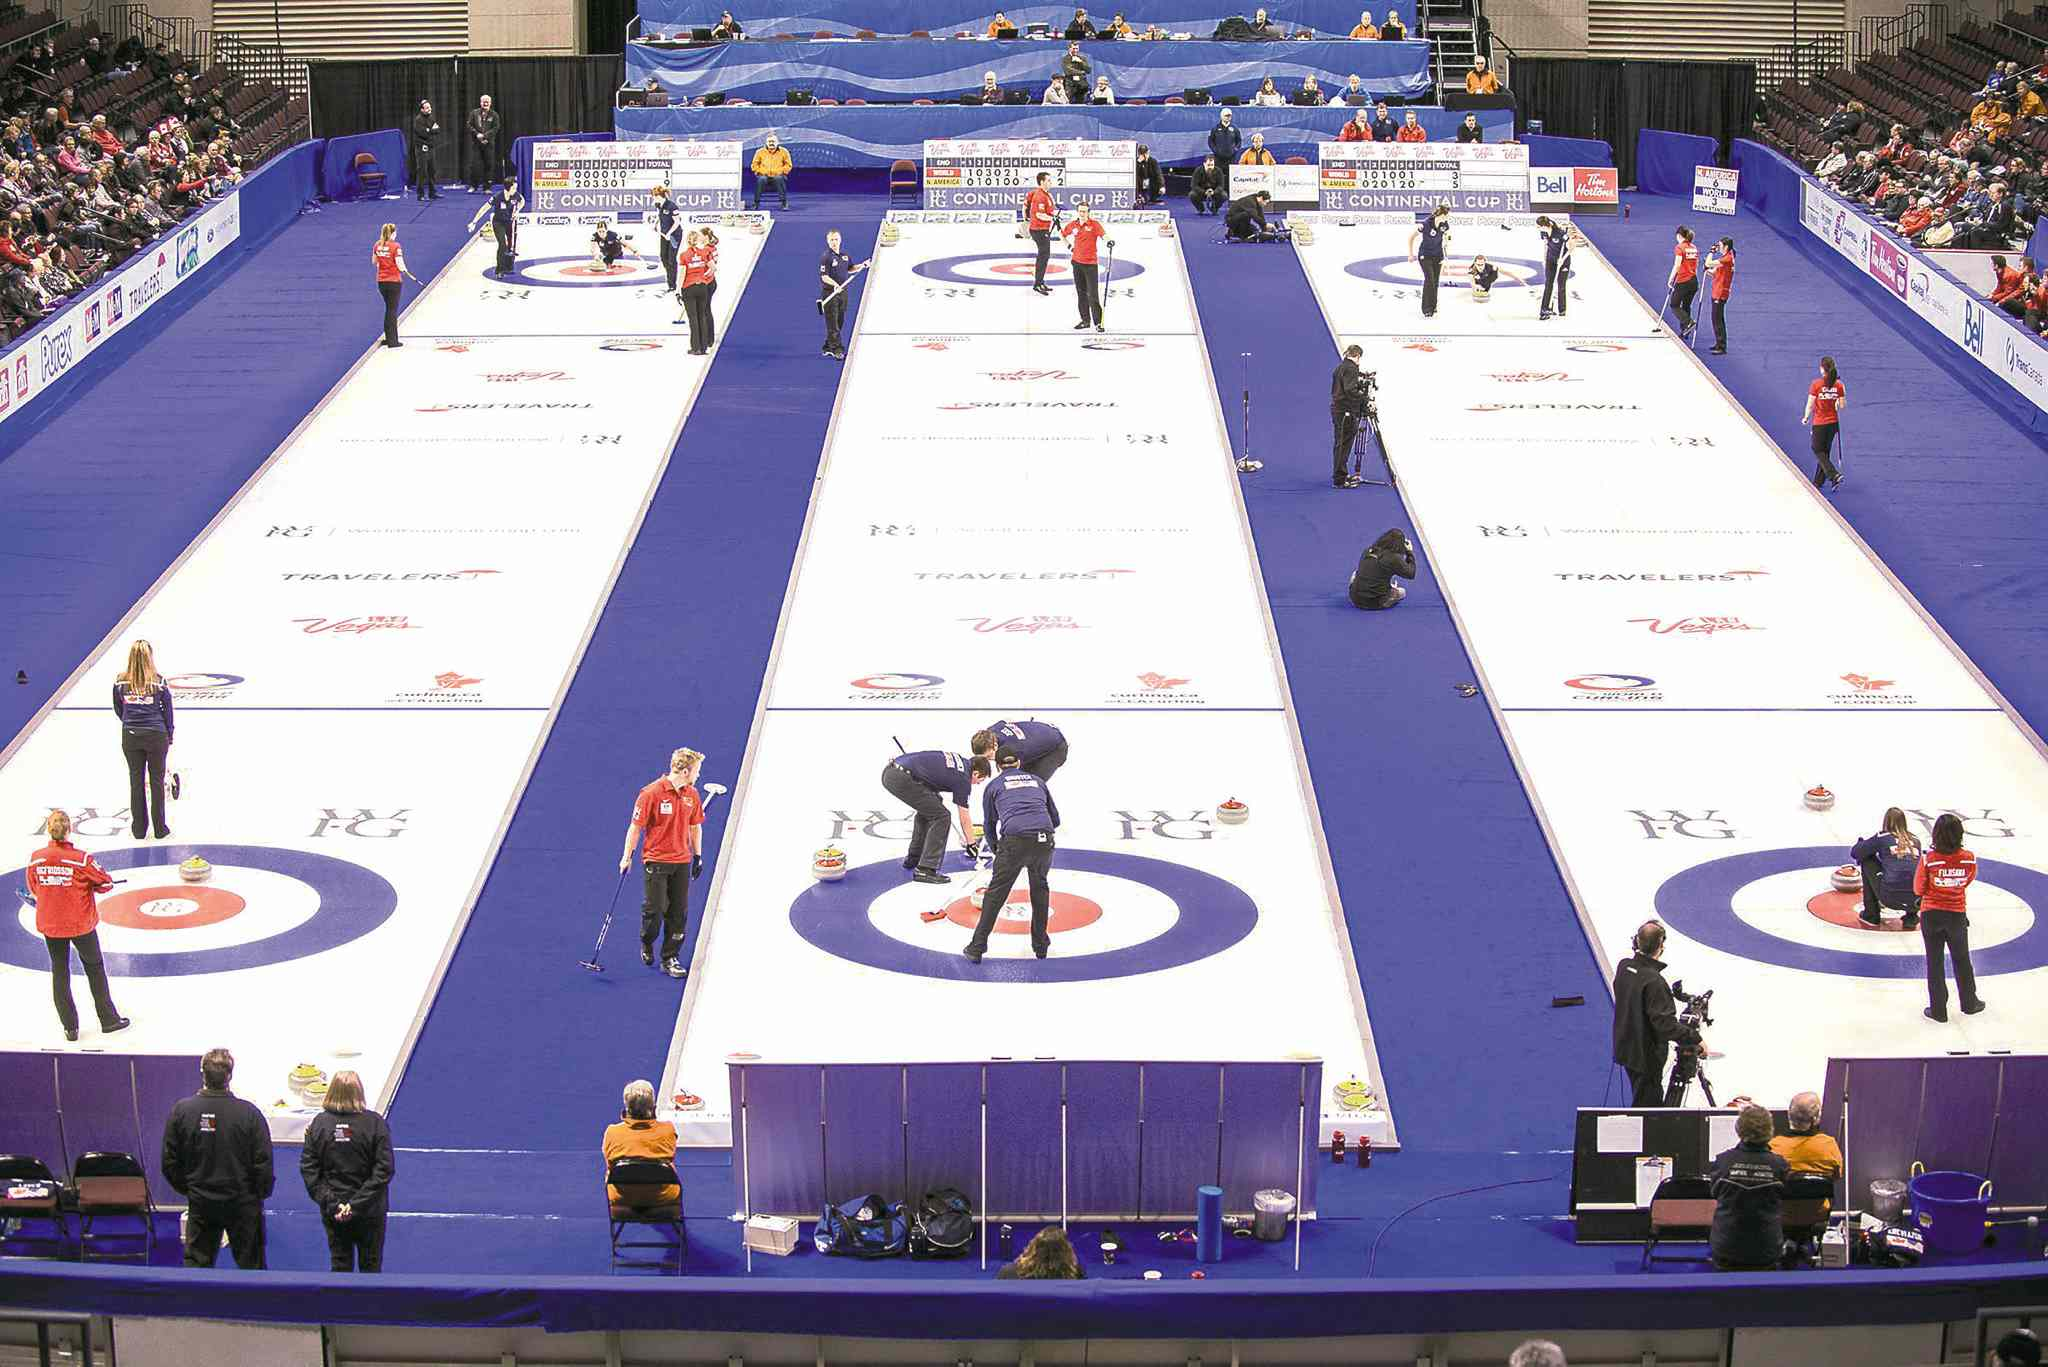 Three sheets are rocking at the Orleans Arena in Las Vegas this week as curlers take Sin City by storm. Thousands of Canadian fans flew south to watch Continental Cup action.